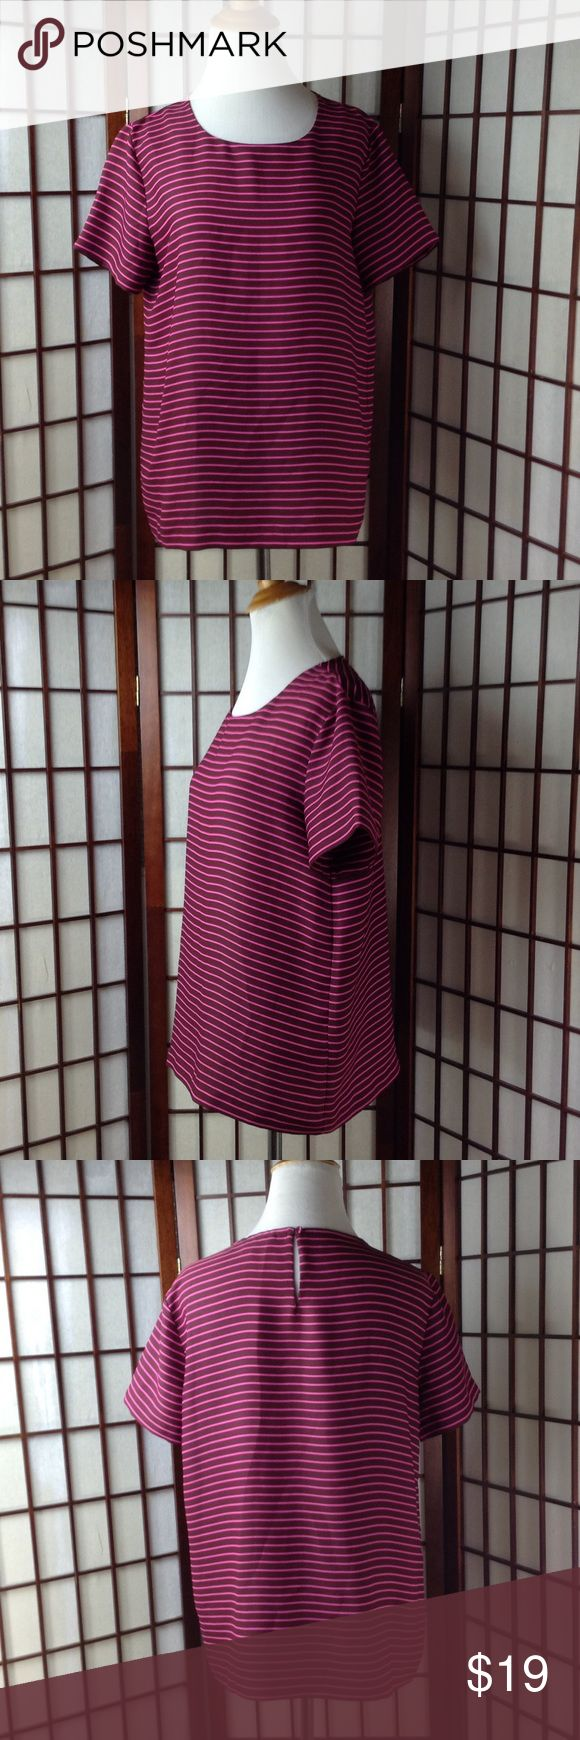 """Ann Taylor Loft Striped Short Sleeve Top pre-owned excellent condition.     Ann Taylor Loft Size Small.    striped pattern, short sleeve , keyhole back , shade of pink (brink pink) and brown (burgundy), made of 100% polyester. Pit to pit 19 inches, shoulder to hem 25.5"""" LOFT Tops"""